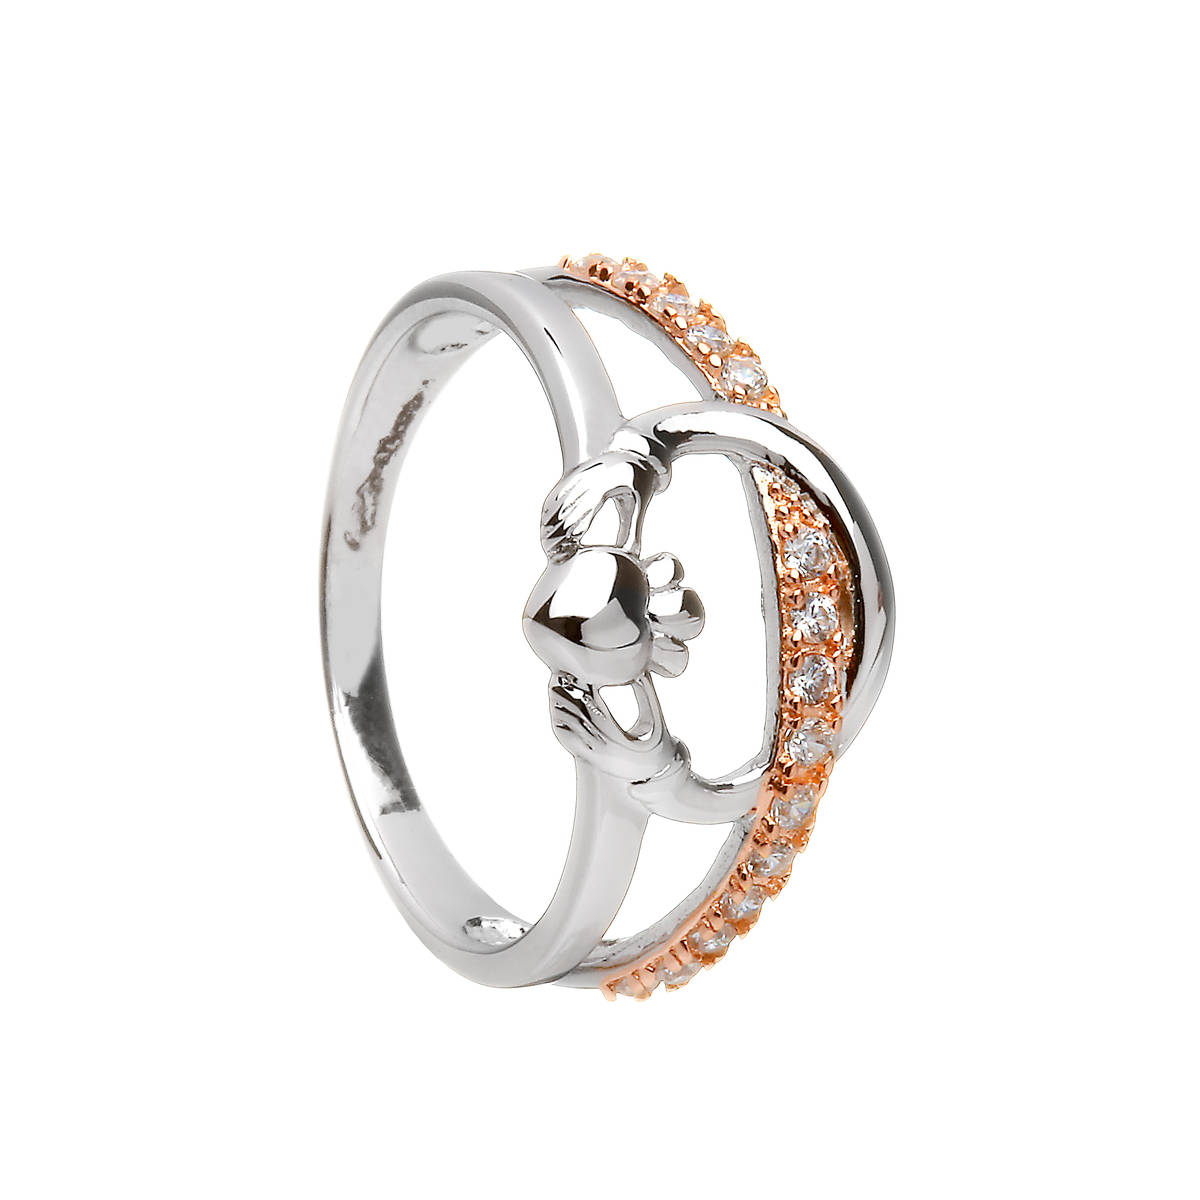 Silver Claddagh Ring With Cz Set In Rose Gold Plating